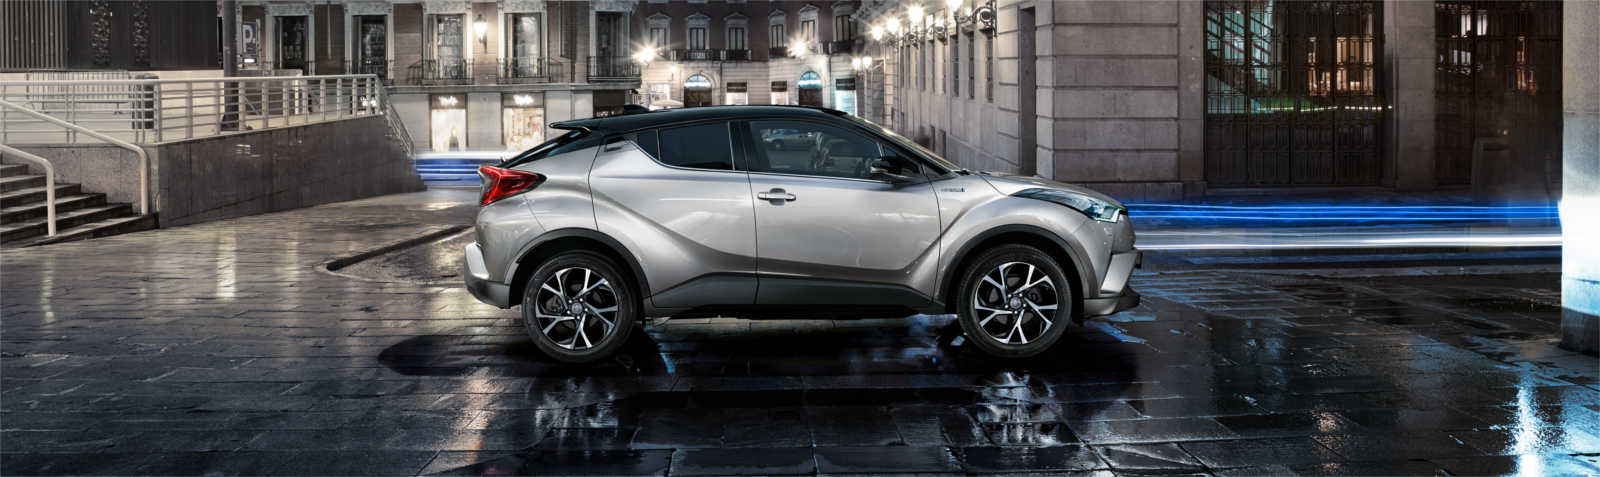 toyota chr lateral